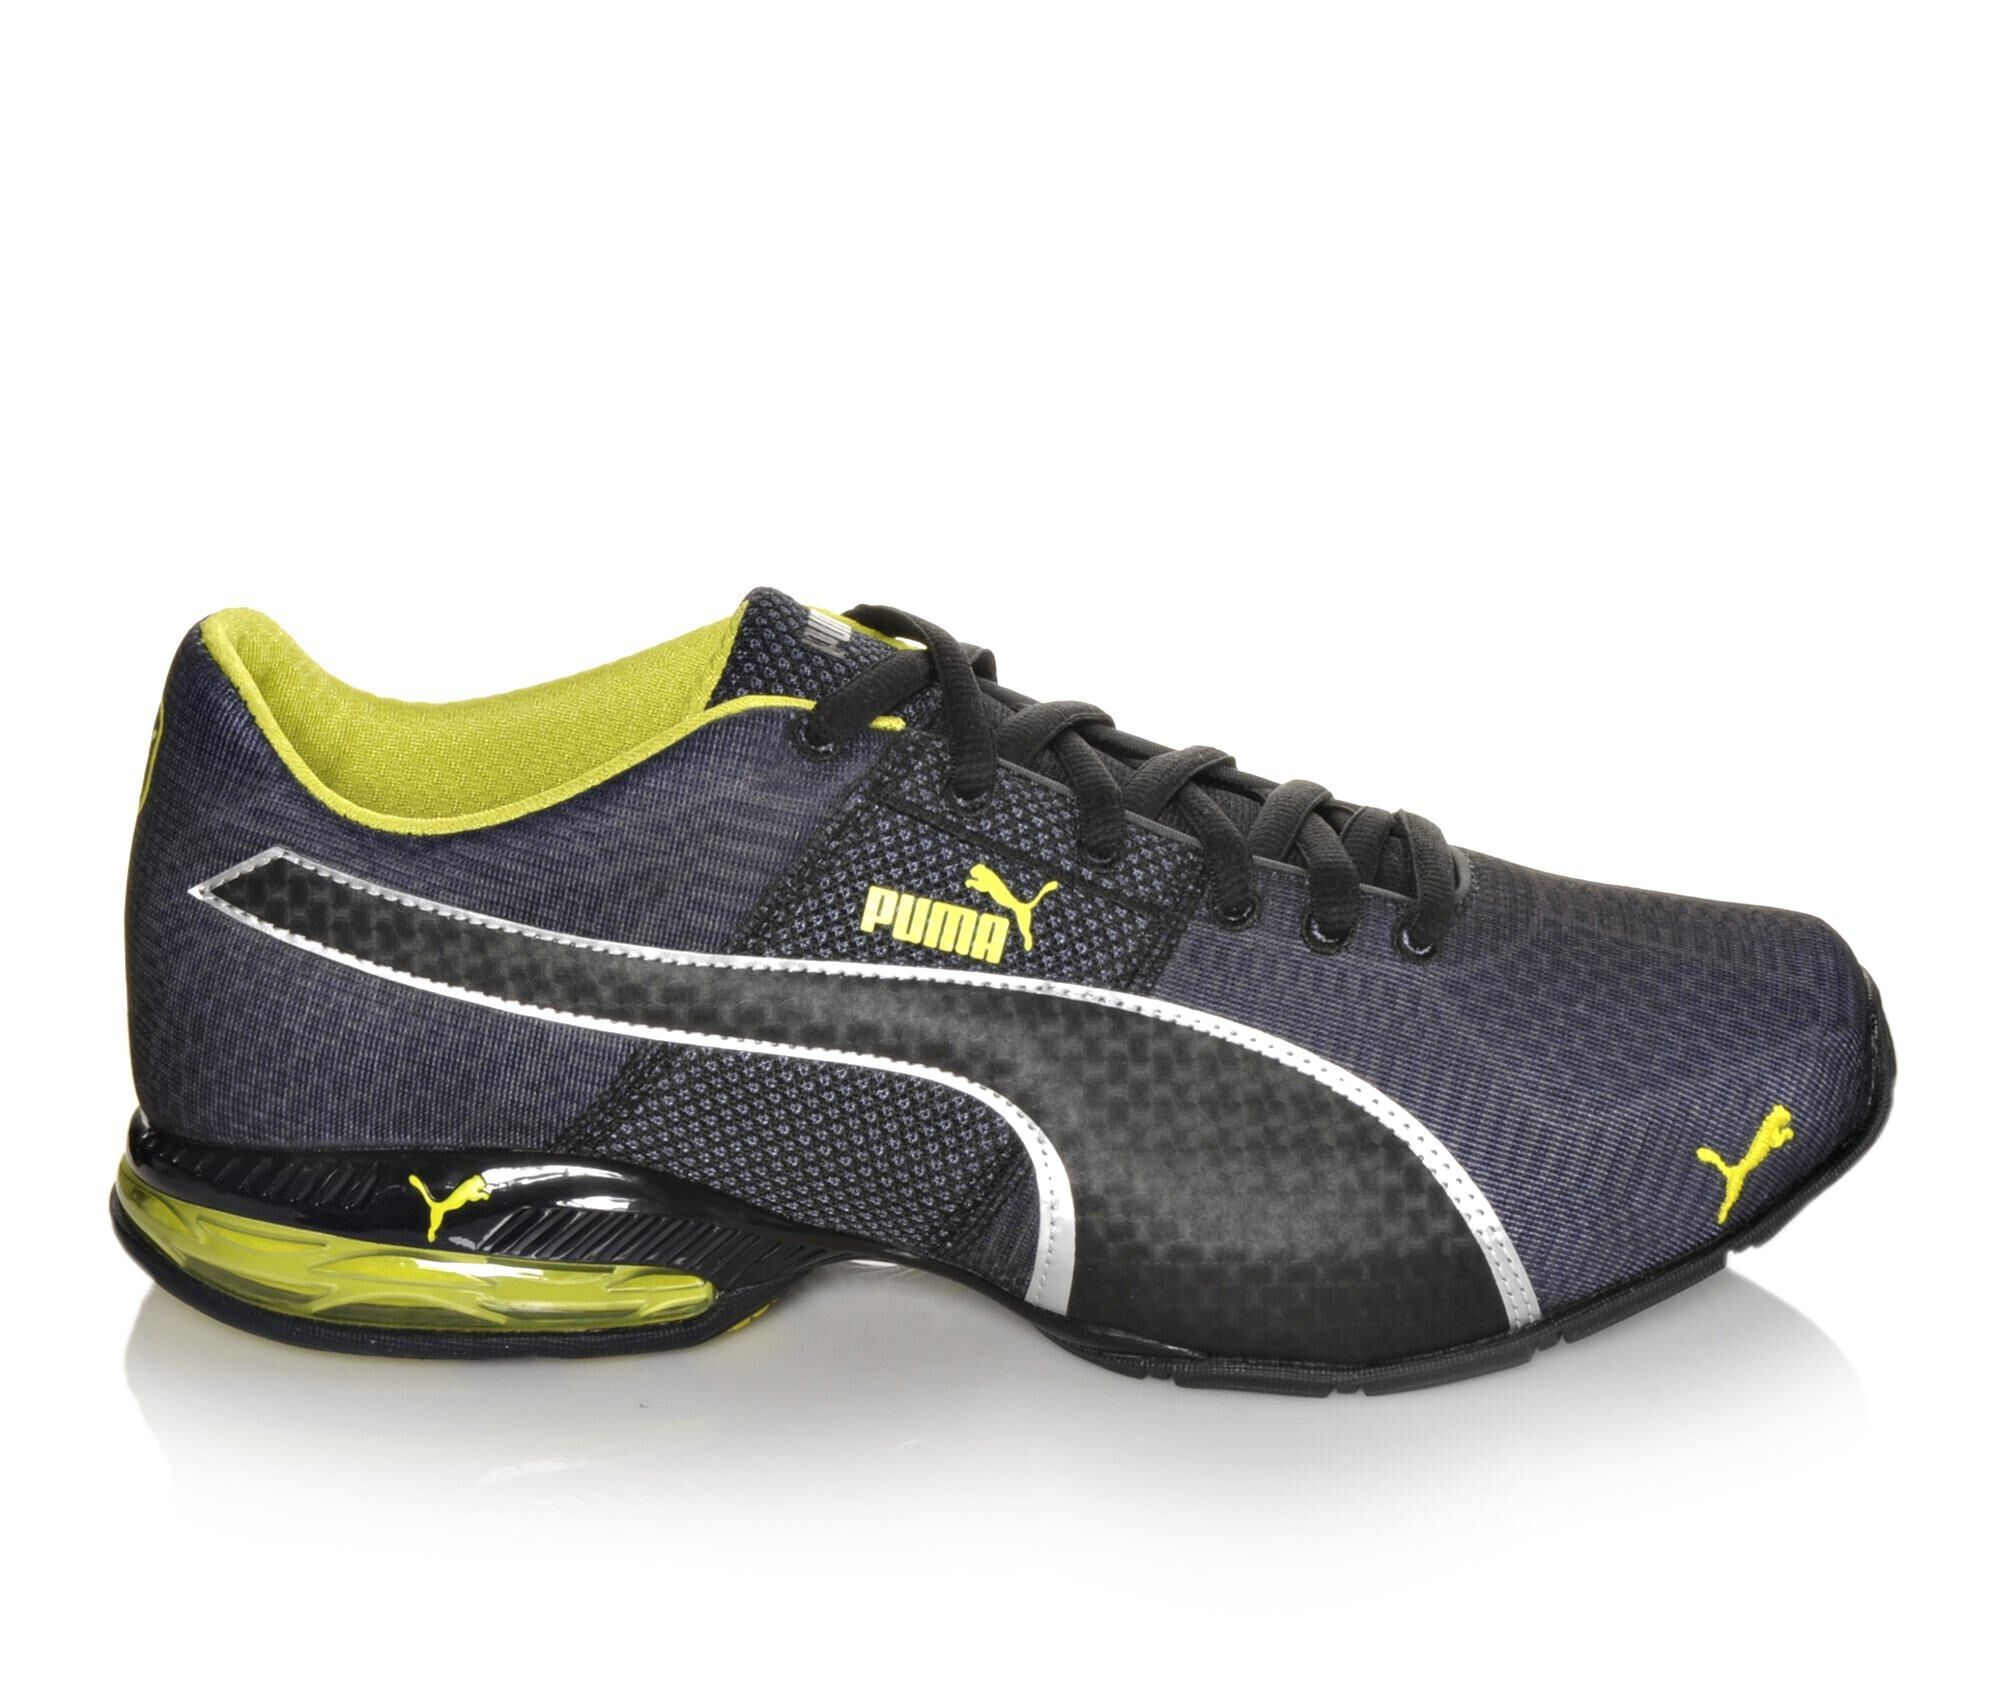 Puma Shoes Puma Cell Surin Engineered 2 Mens Sports Shoes Dark Grey/Volt